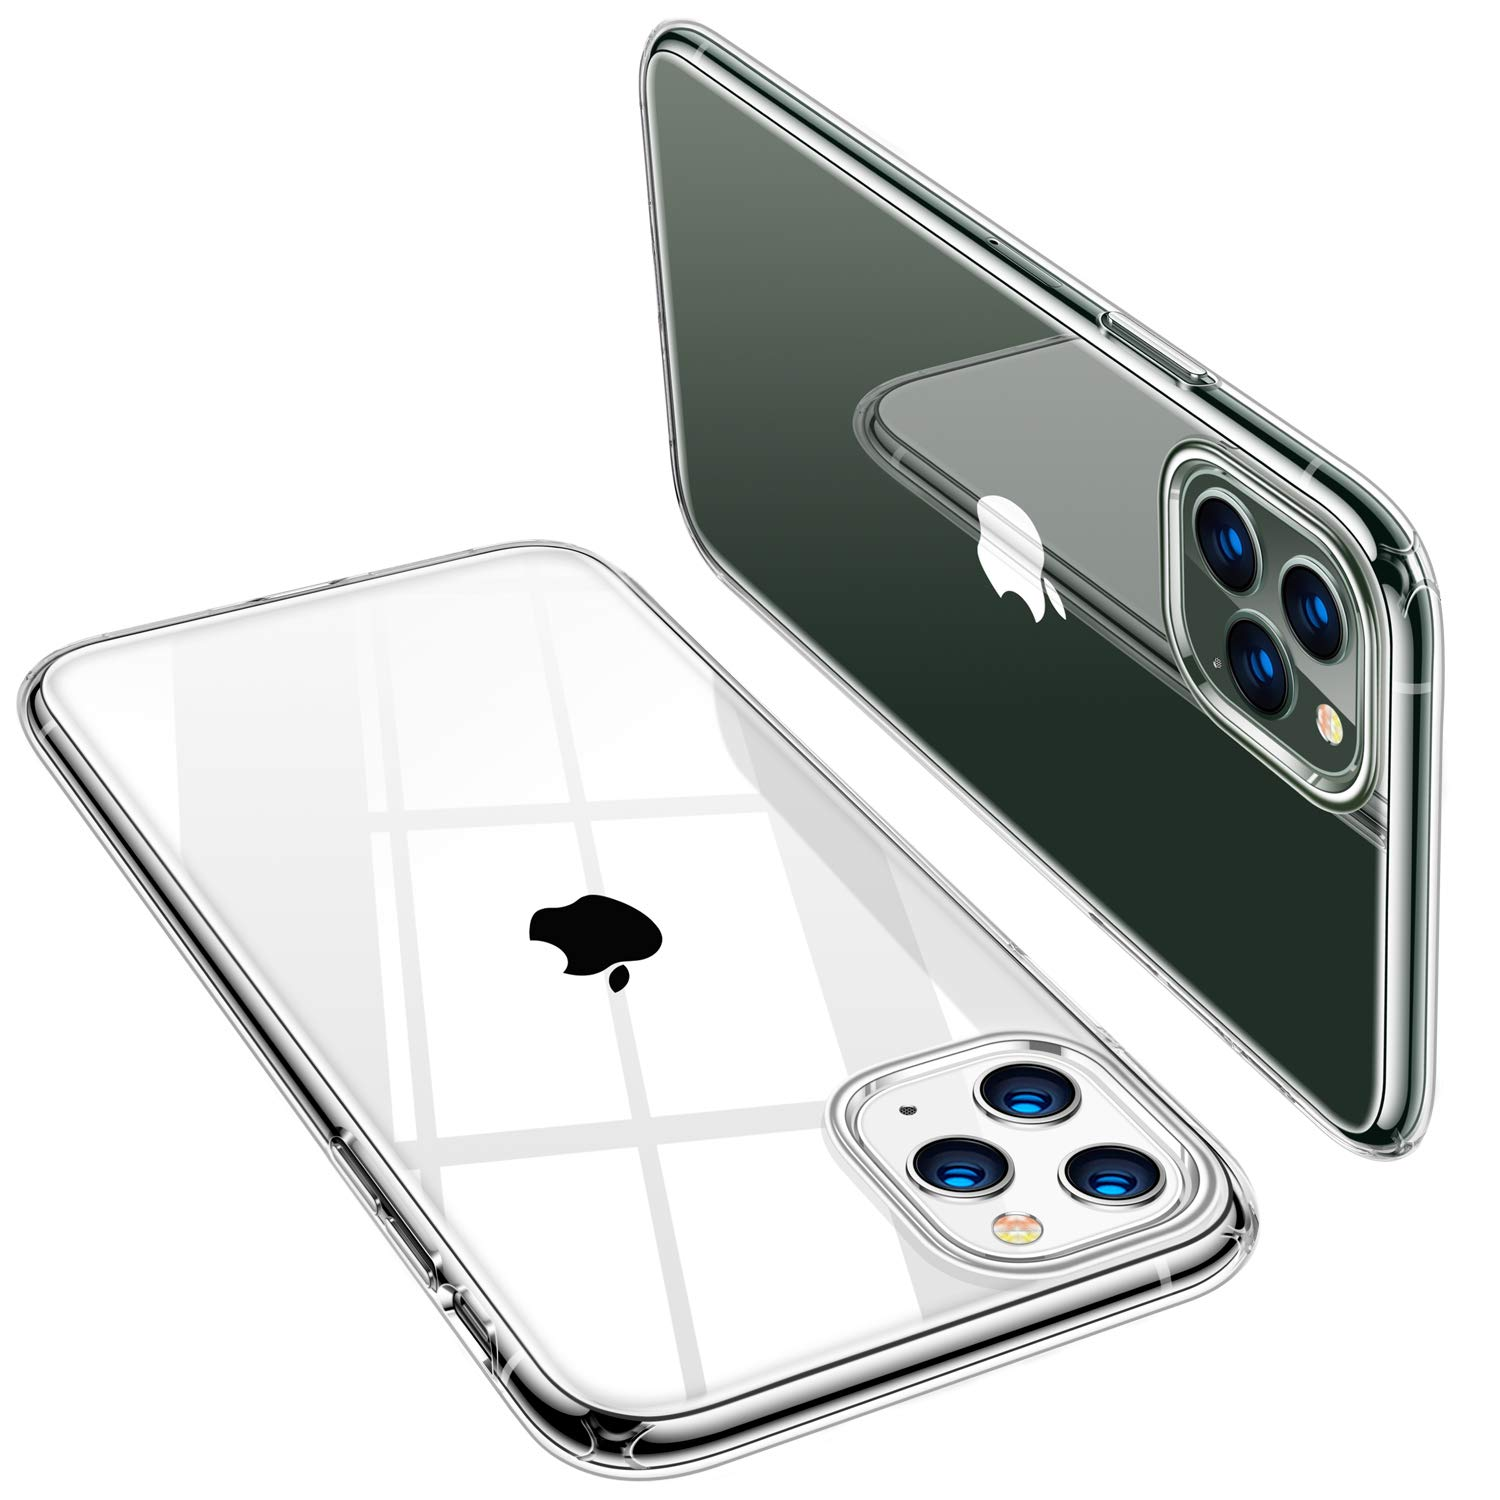 iPhone Pro 11 case